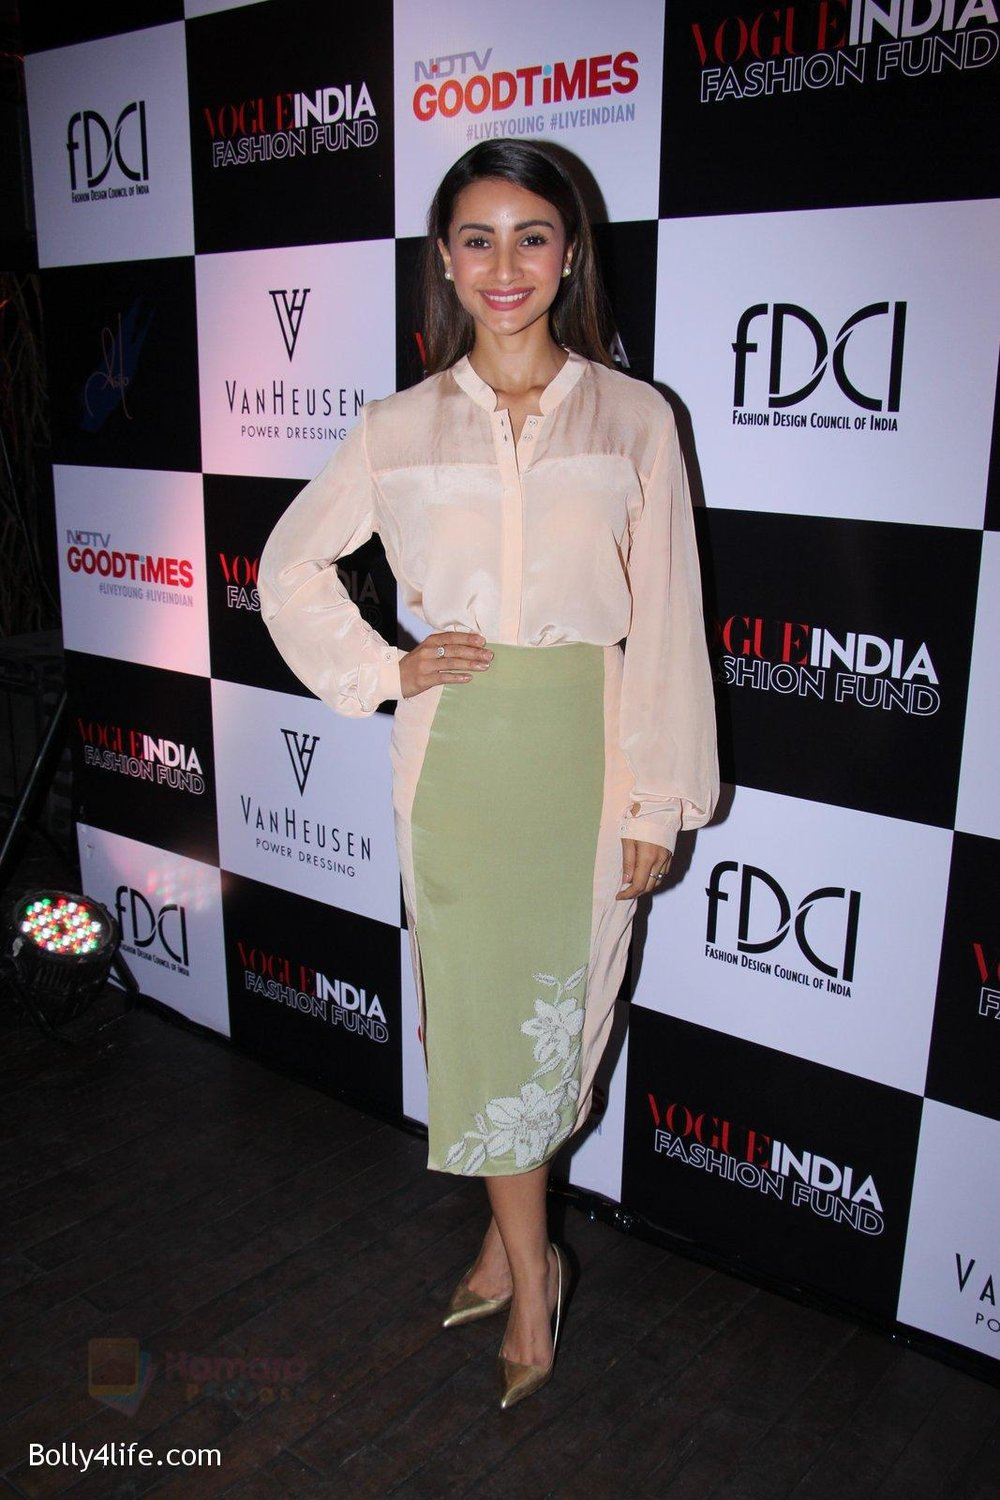 Patralekha-at-Vogue-India-Fashion-Fund-Event-2.jpg